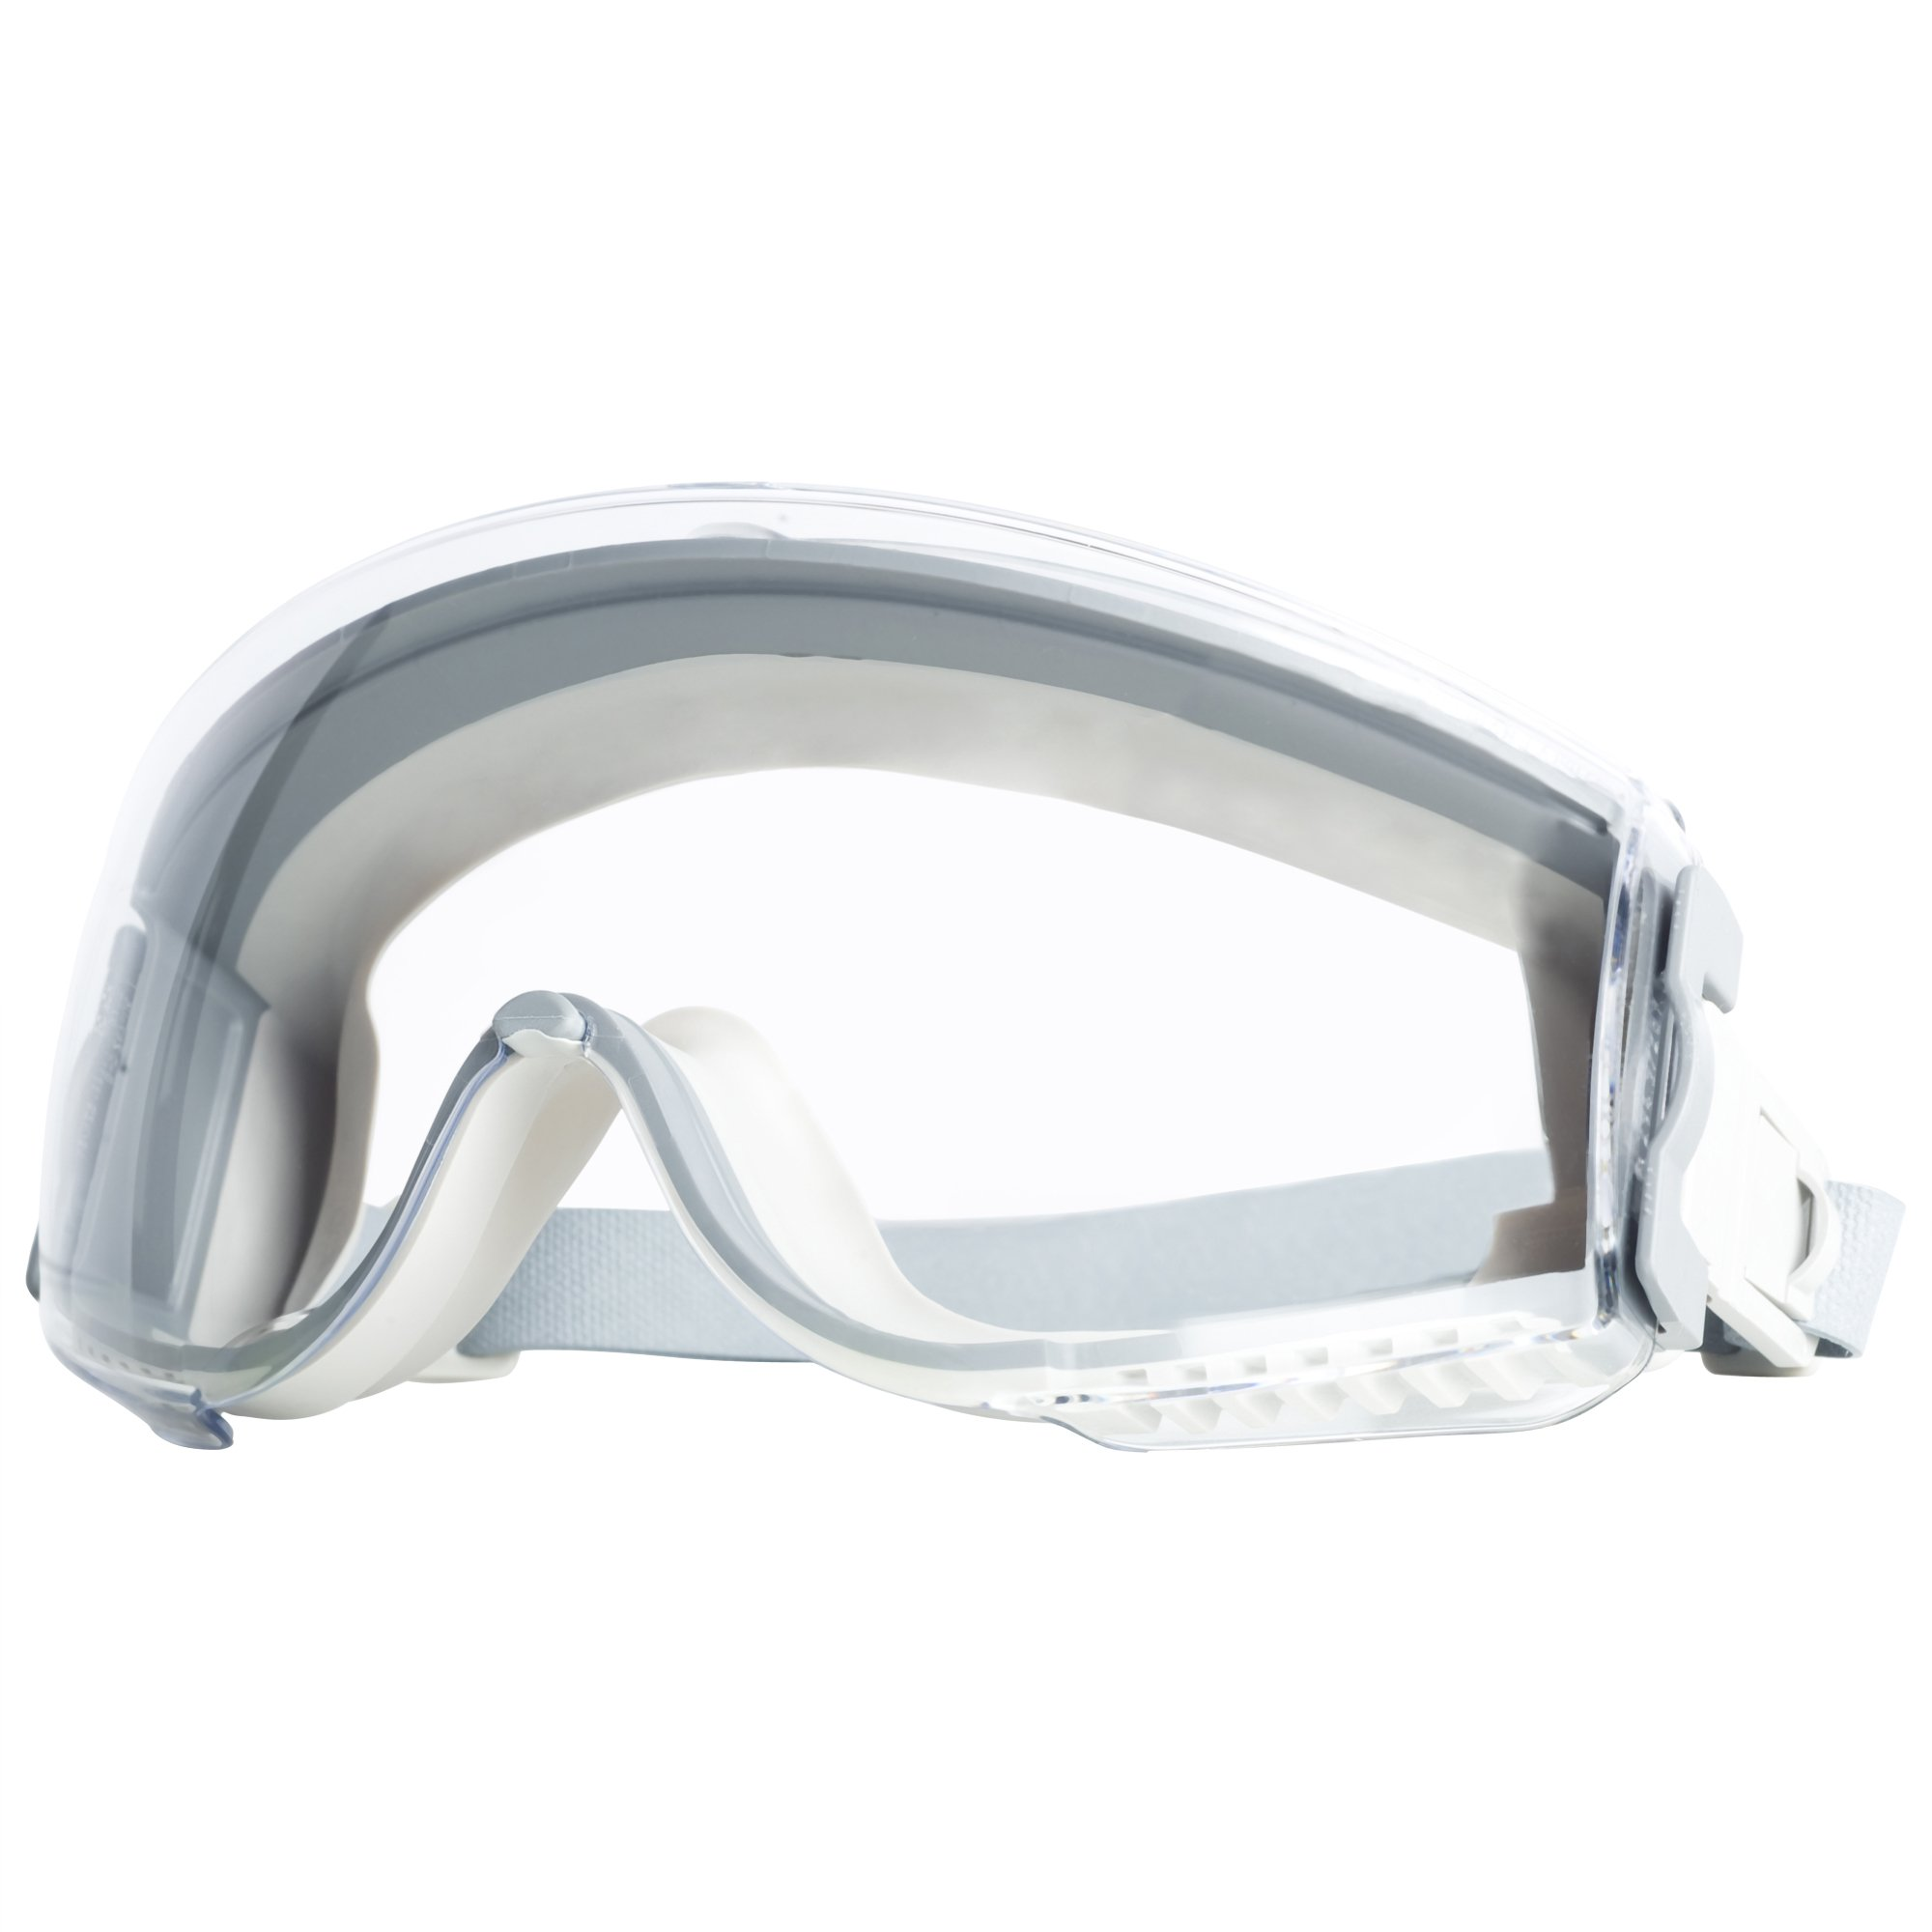 Uvex Stealth Safety Goggles with HydroShield Anti-Fog Lens (S3960HS)